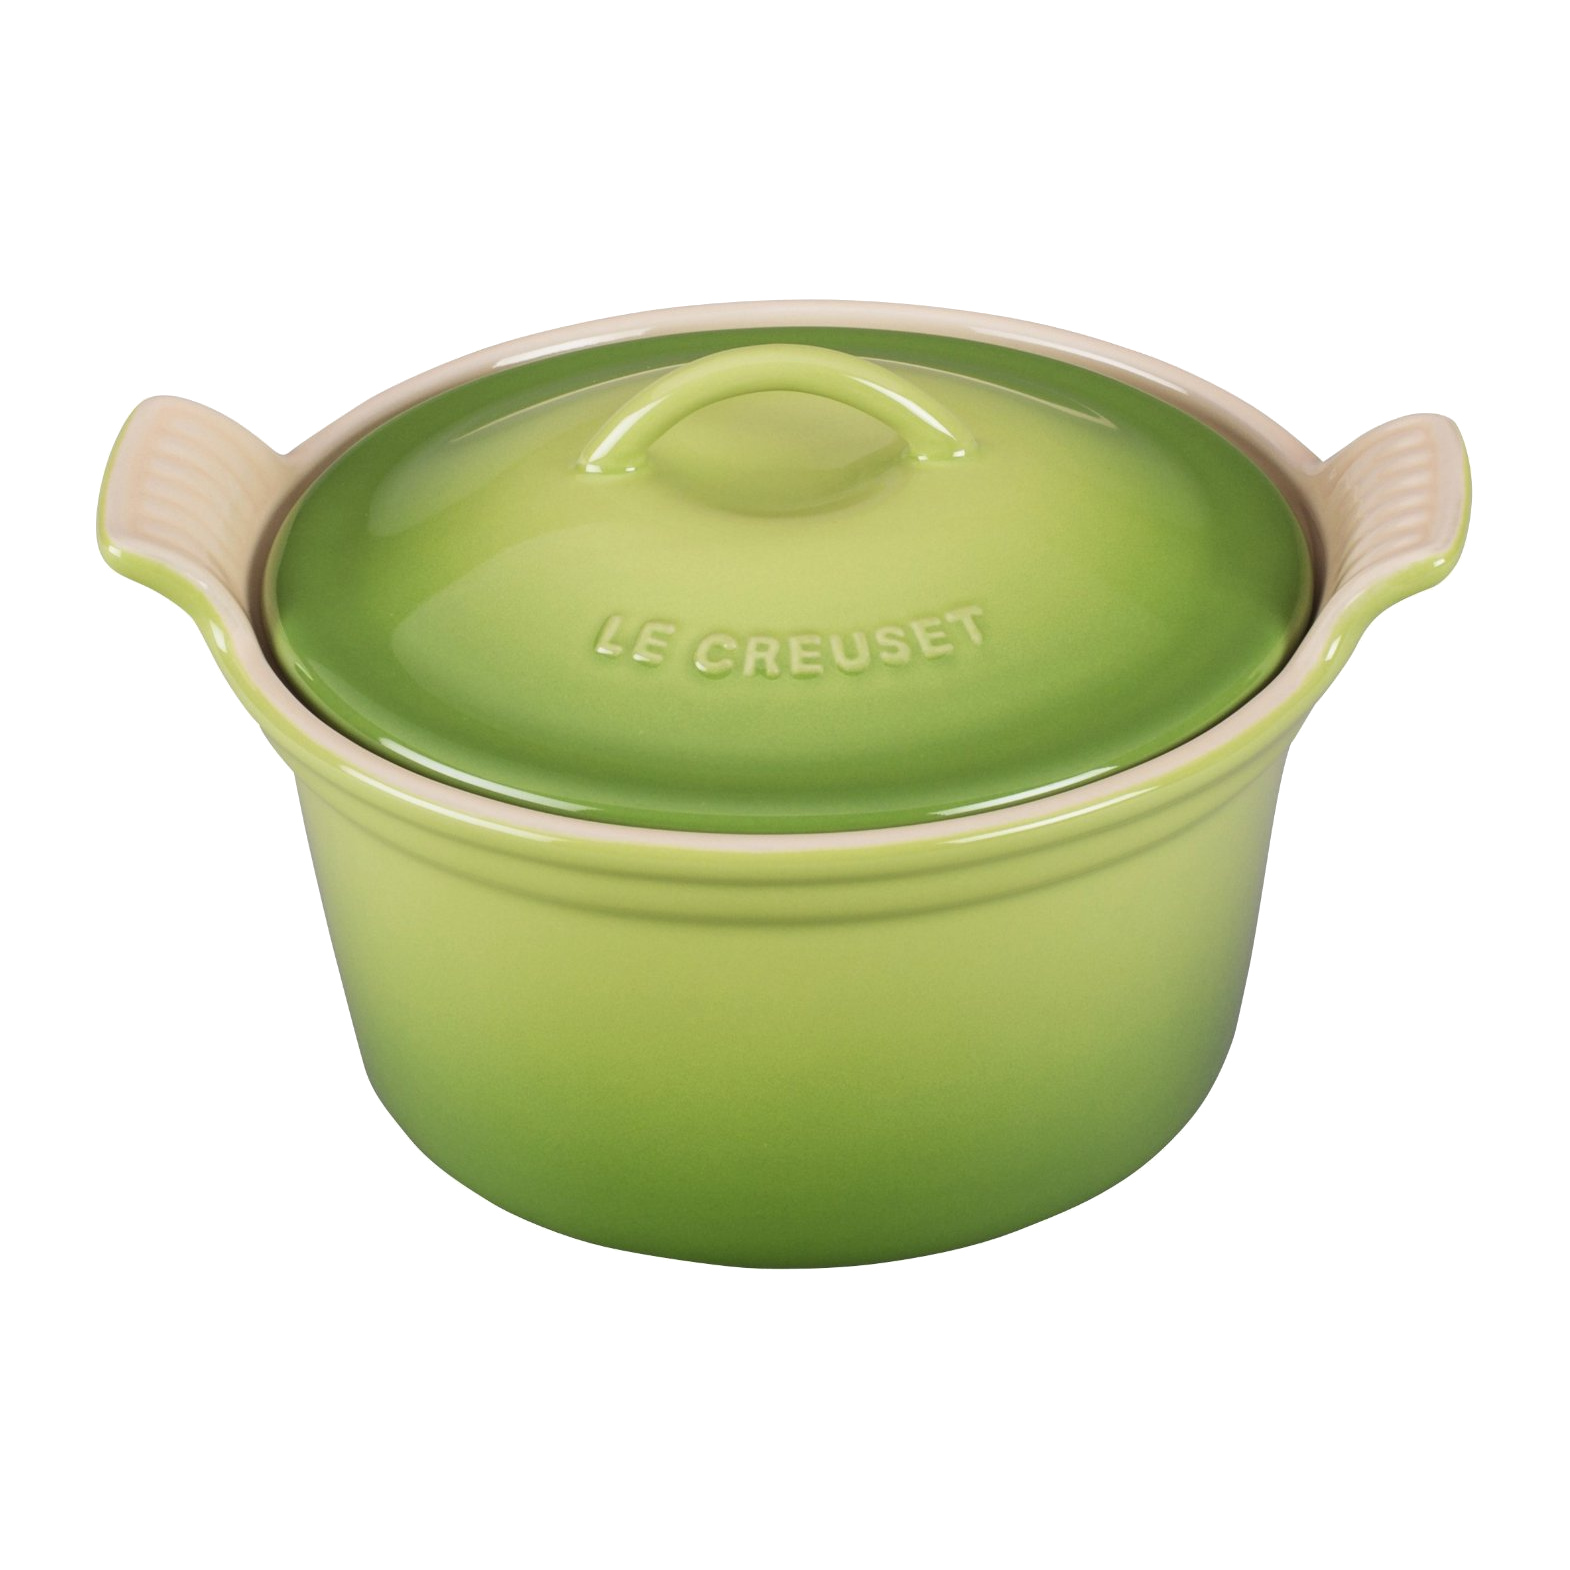 Le Creuset Heritage Palm Stoneware Covered Cocotte, 18 Ounce